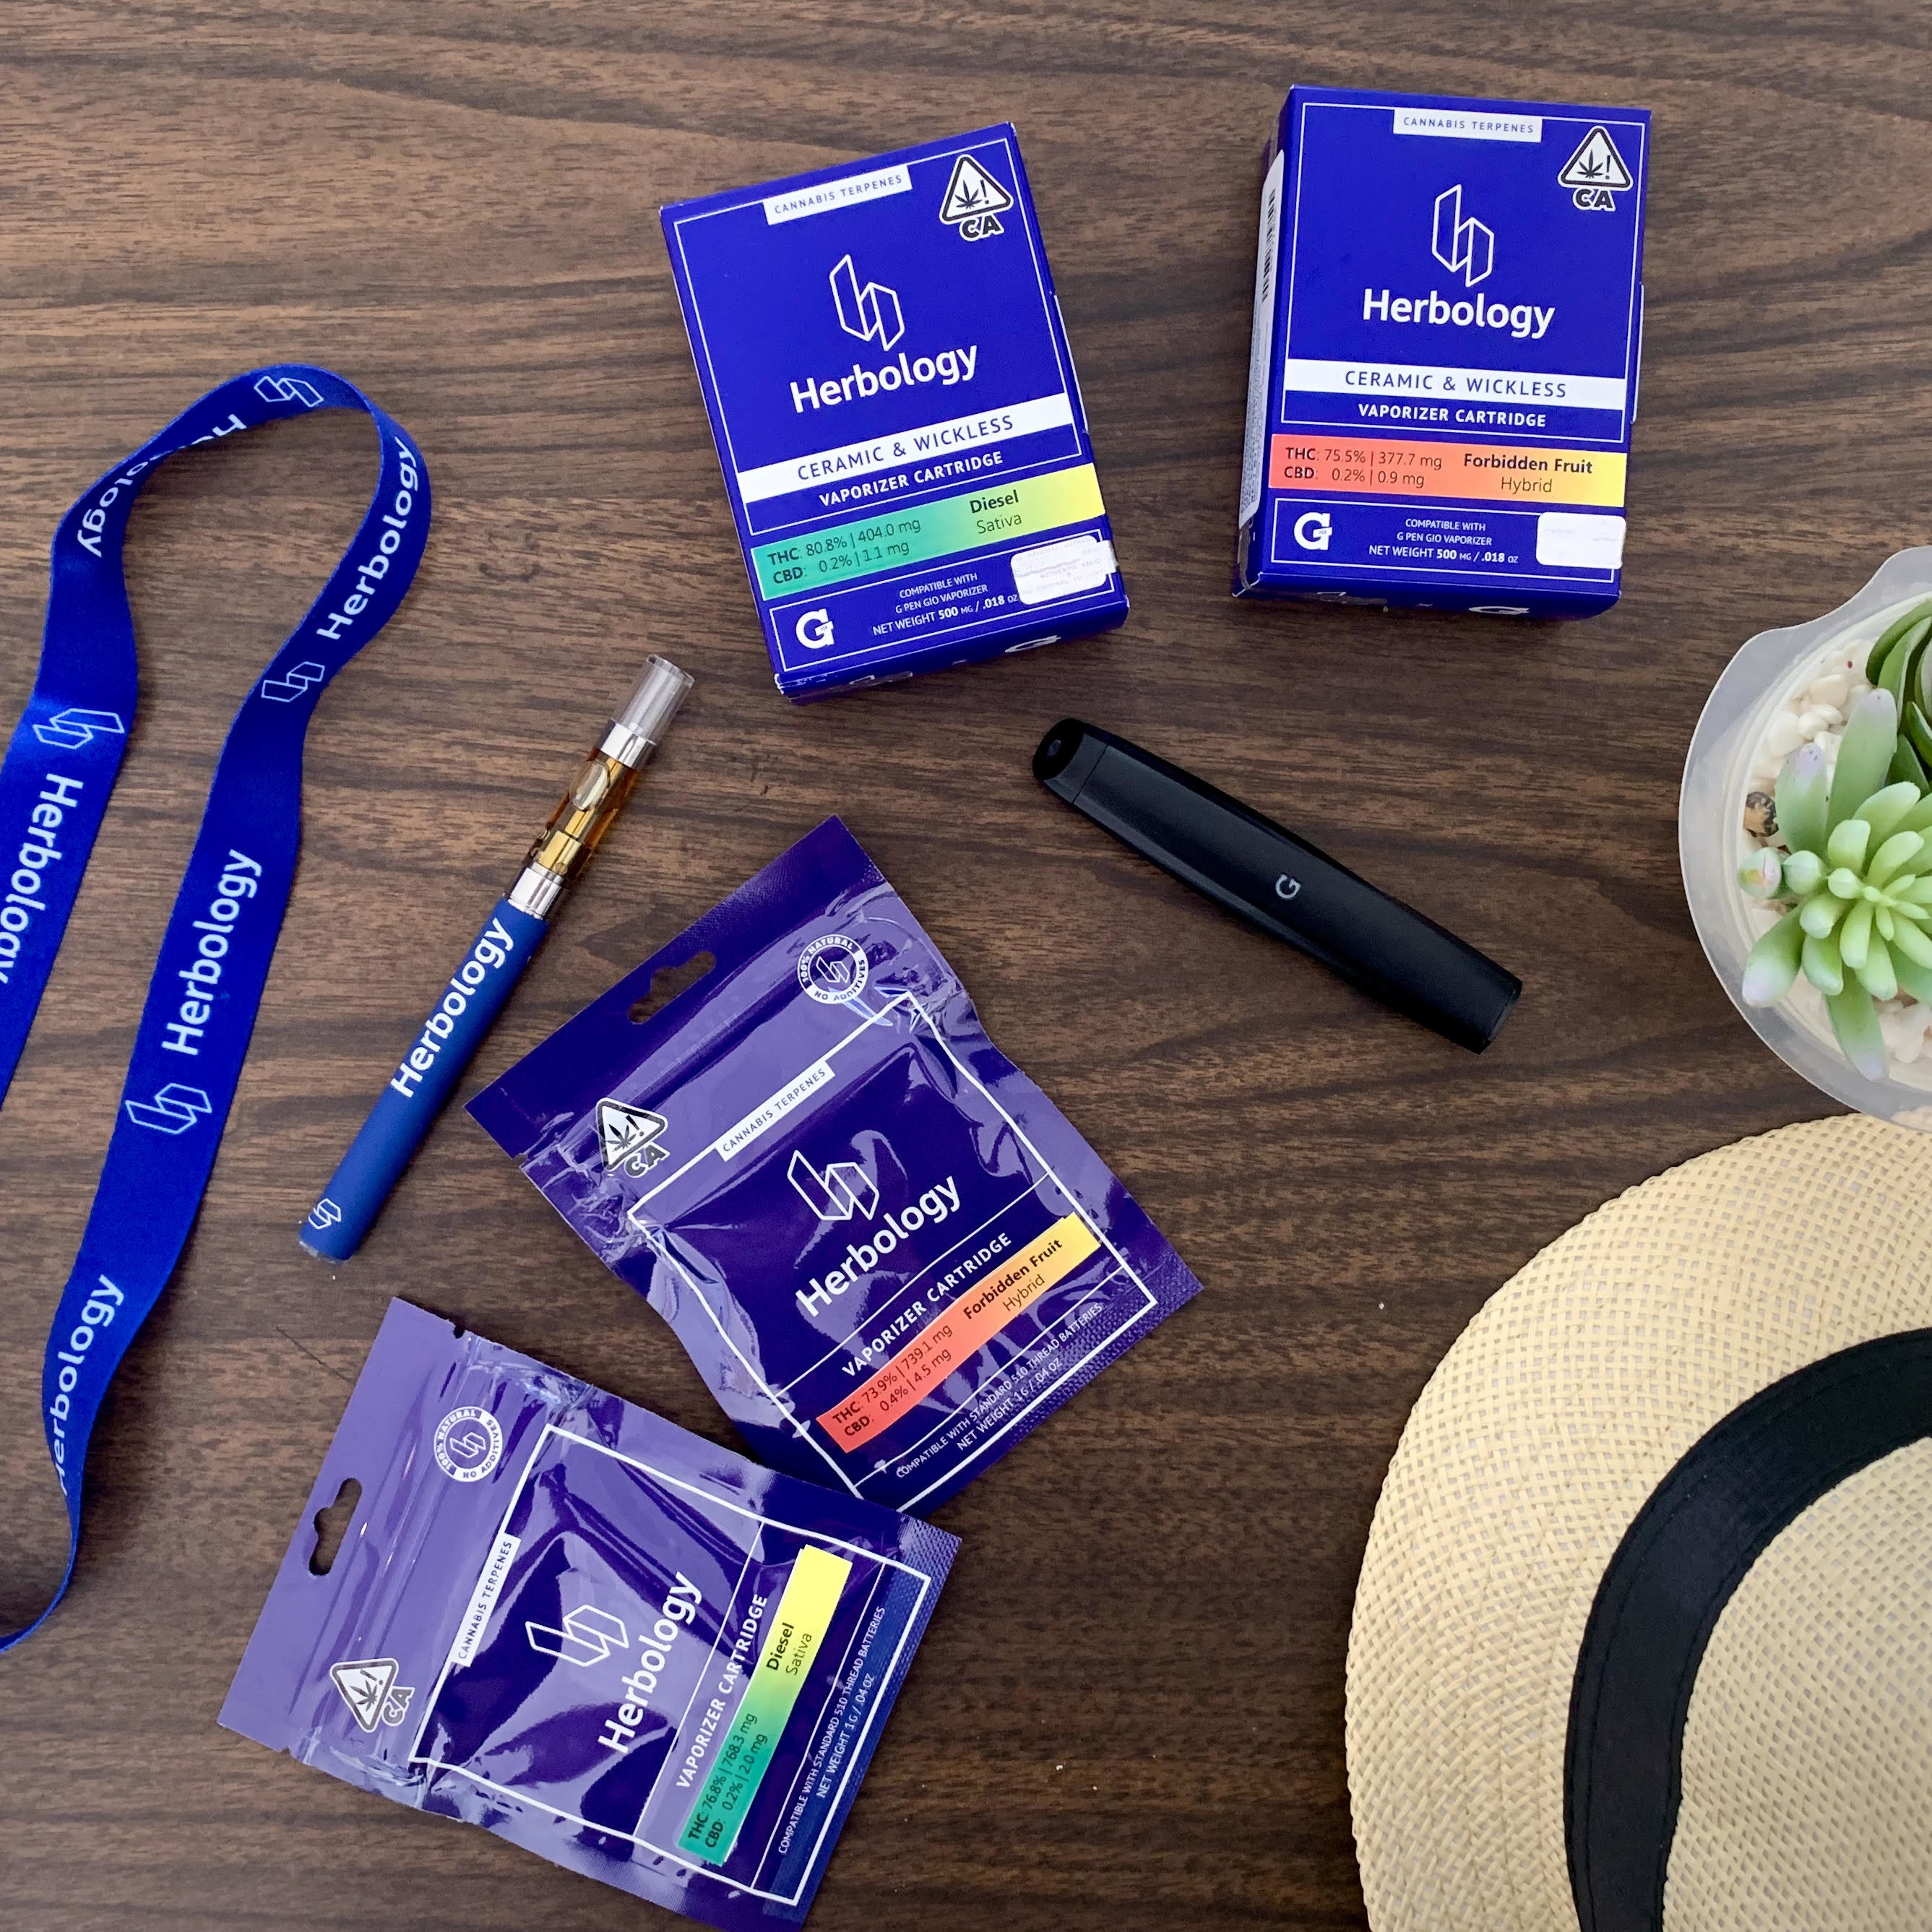 A smattering of Herbology products, including their vaporizers and cartridges